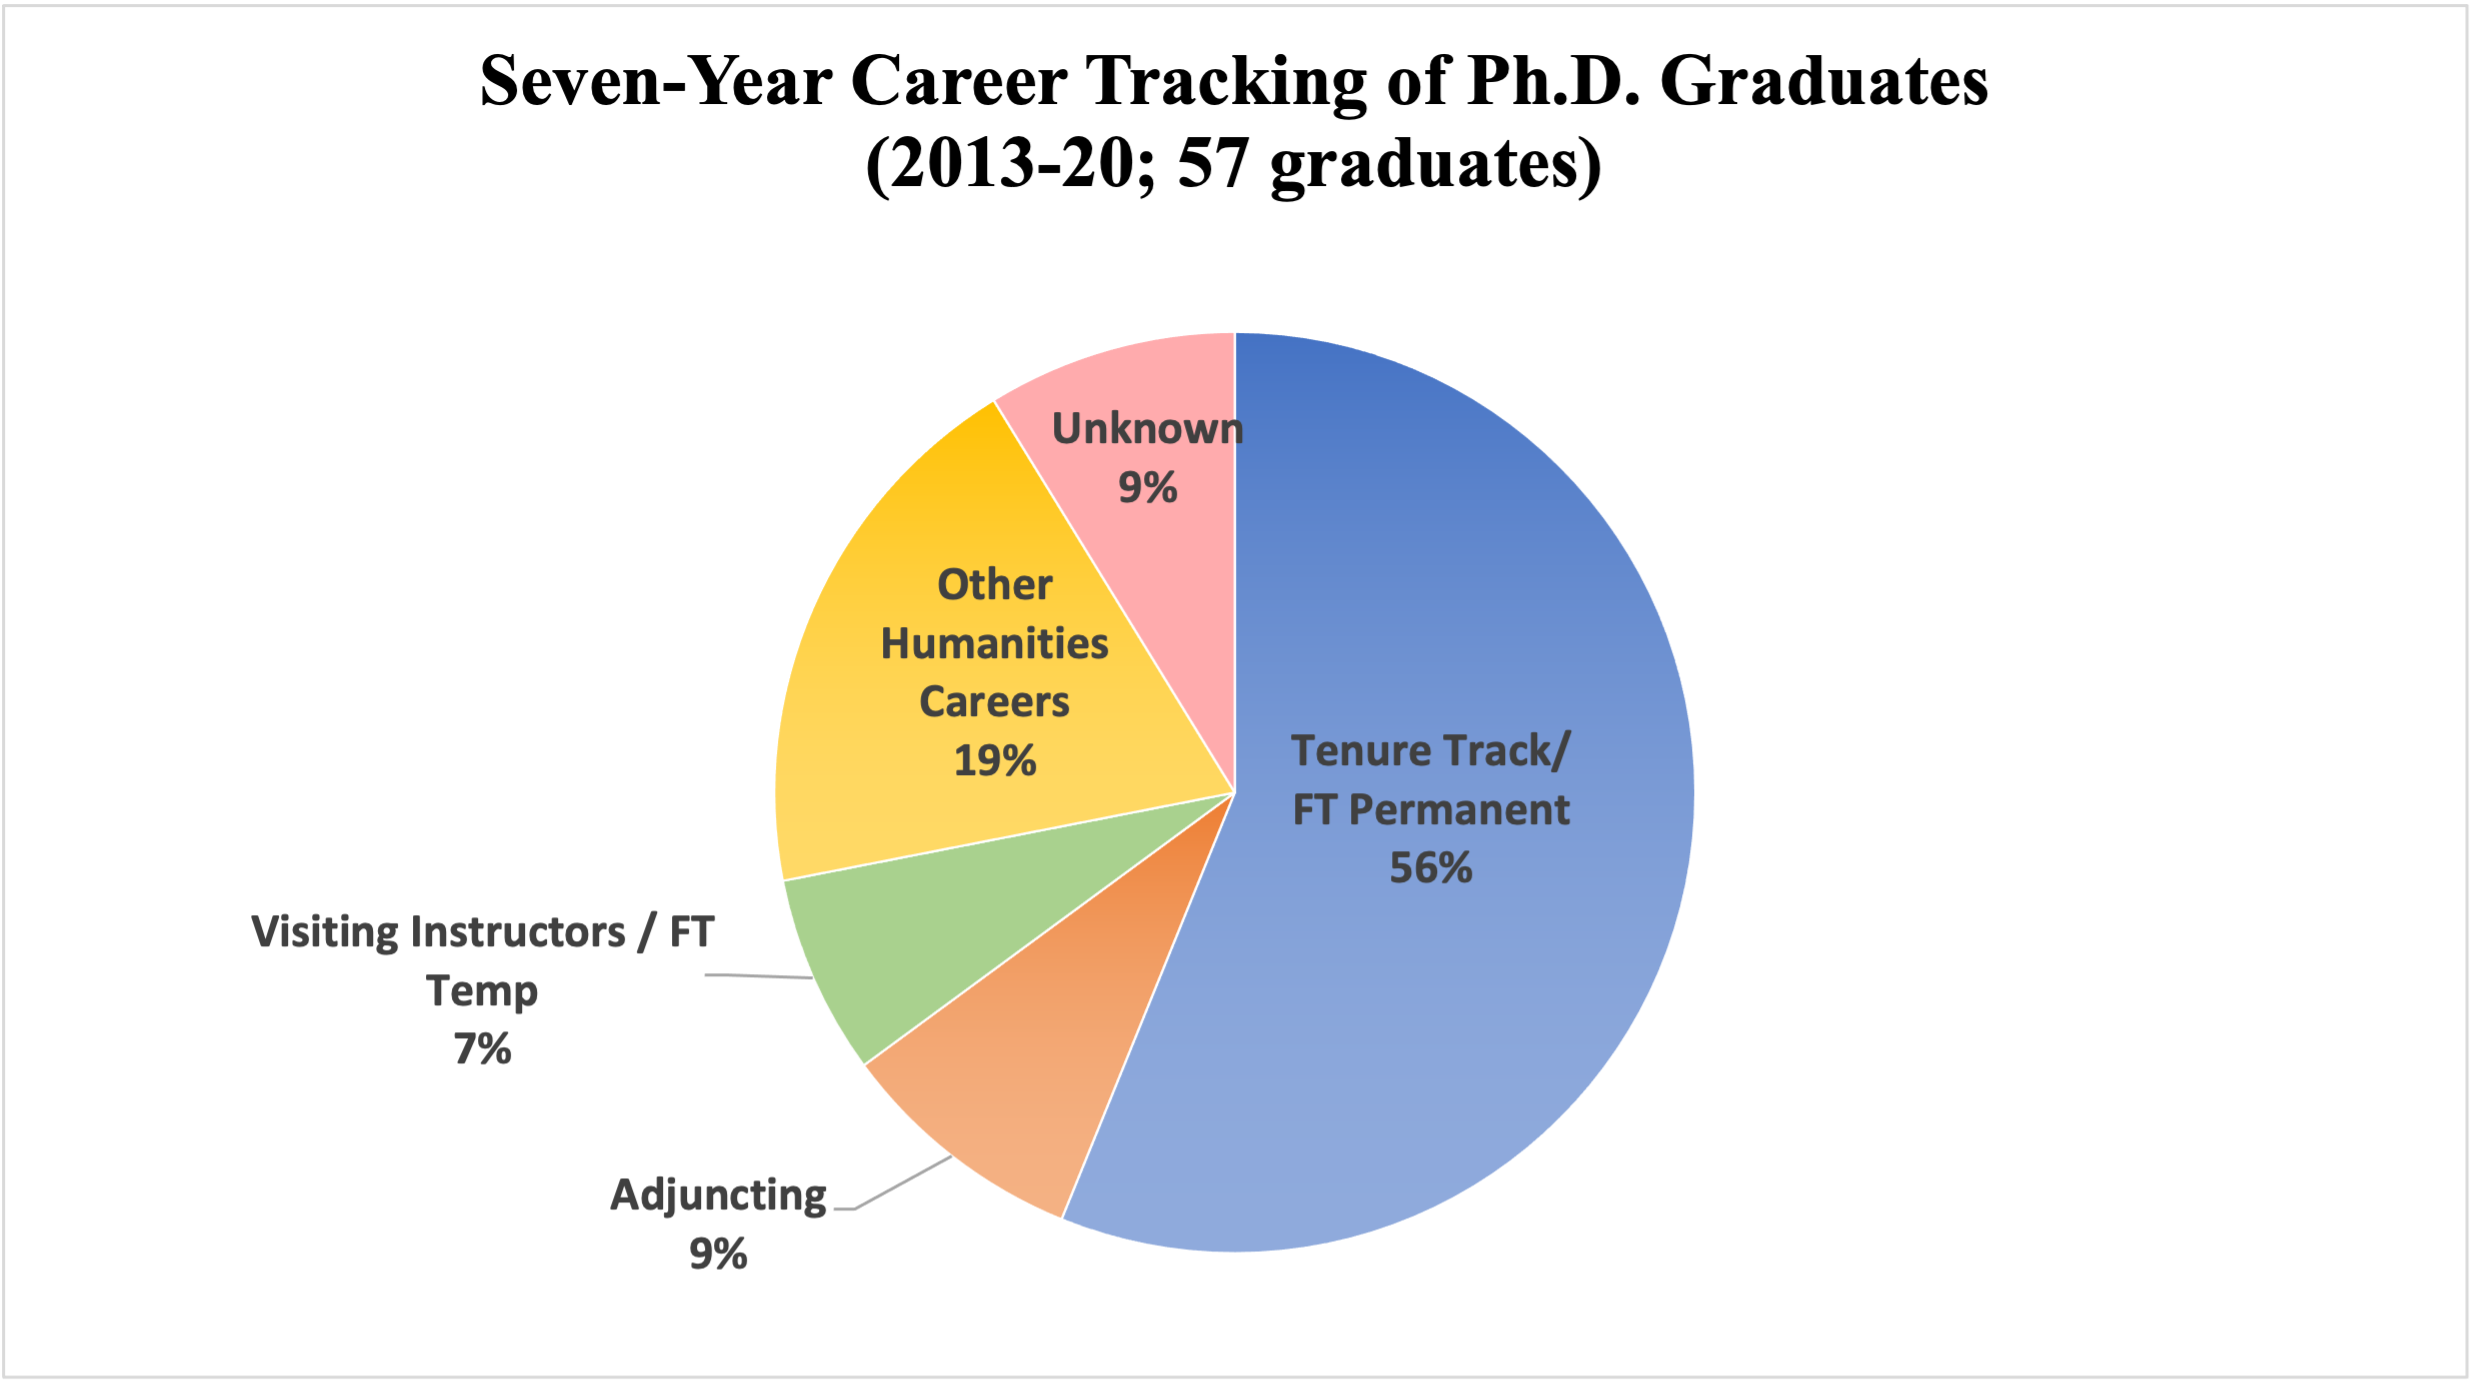 Pie chart showing 5-year career tracking (2013-2018) of 41 PhD graduates: 47% tenure track, 17% other humanities careers, 17% FT Temp, 7% adjuncting, 7% unknown/looking, 5% FT Permanent